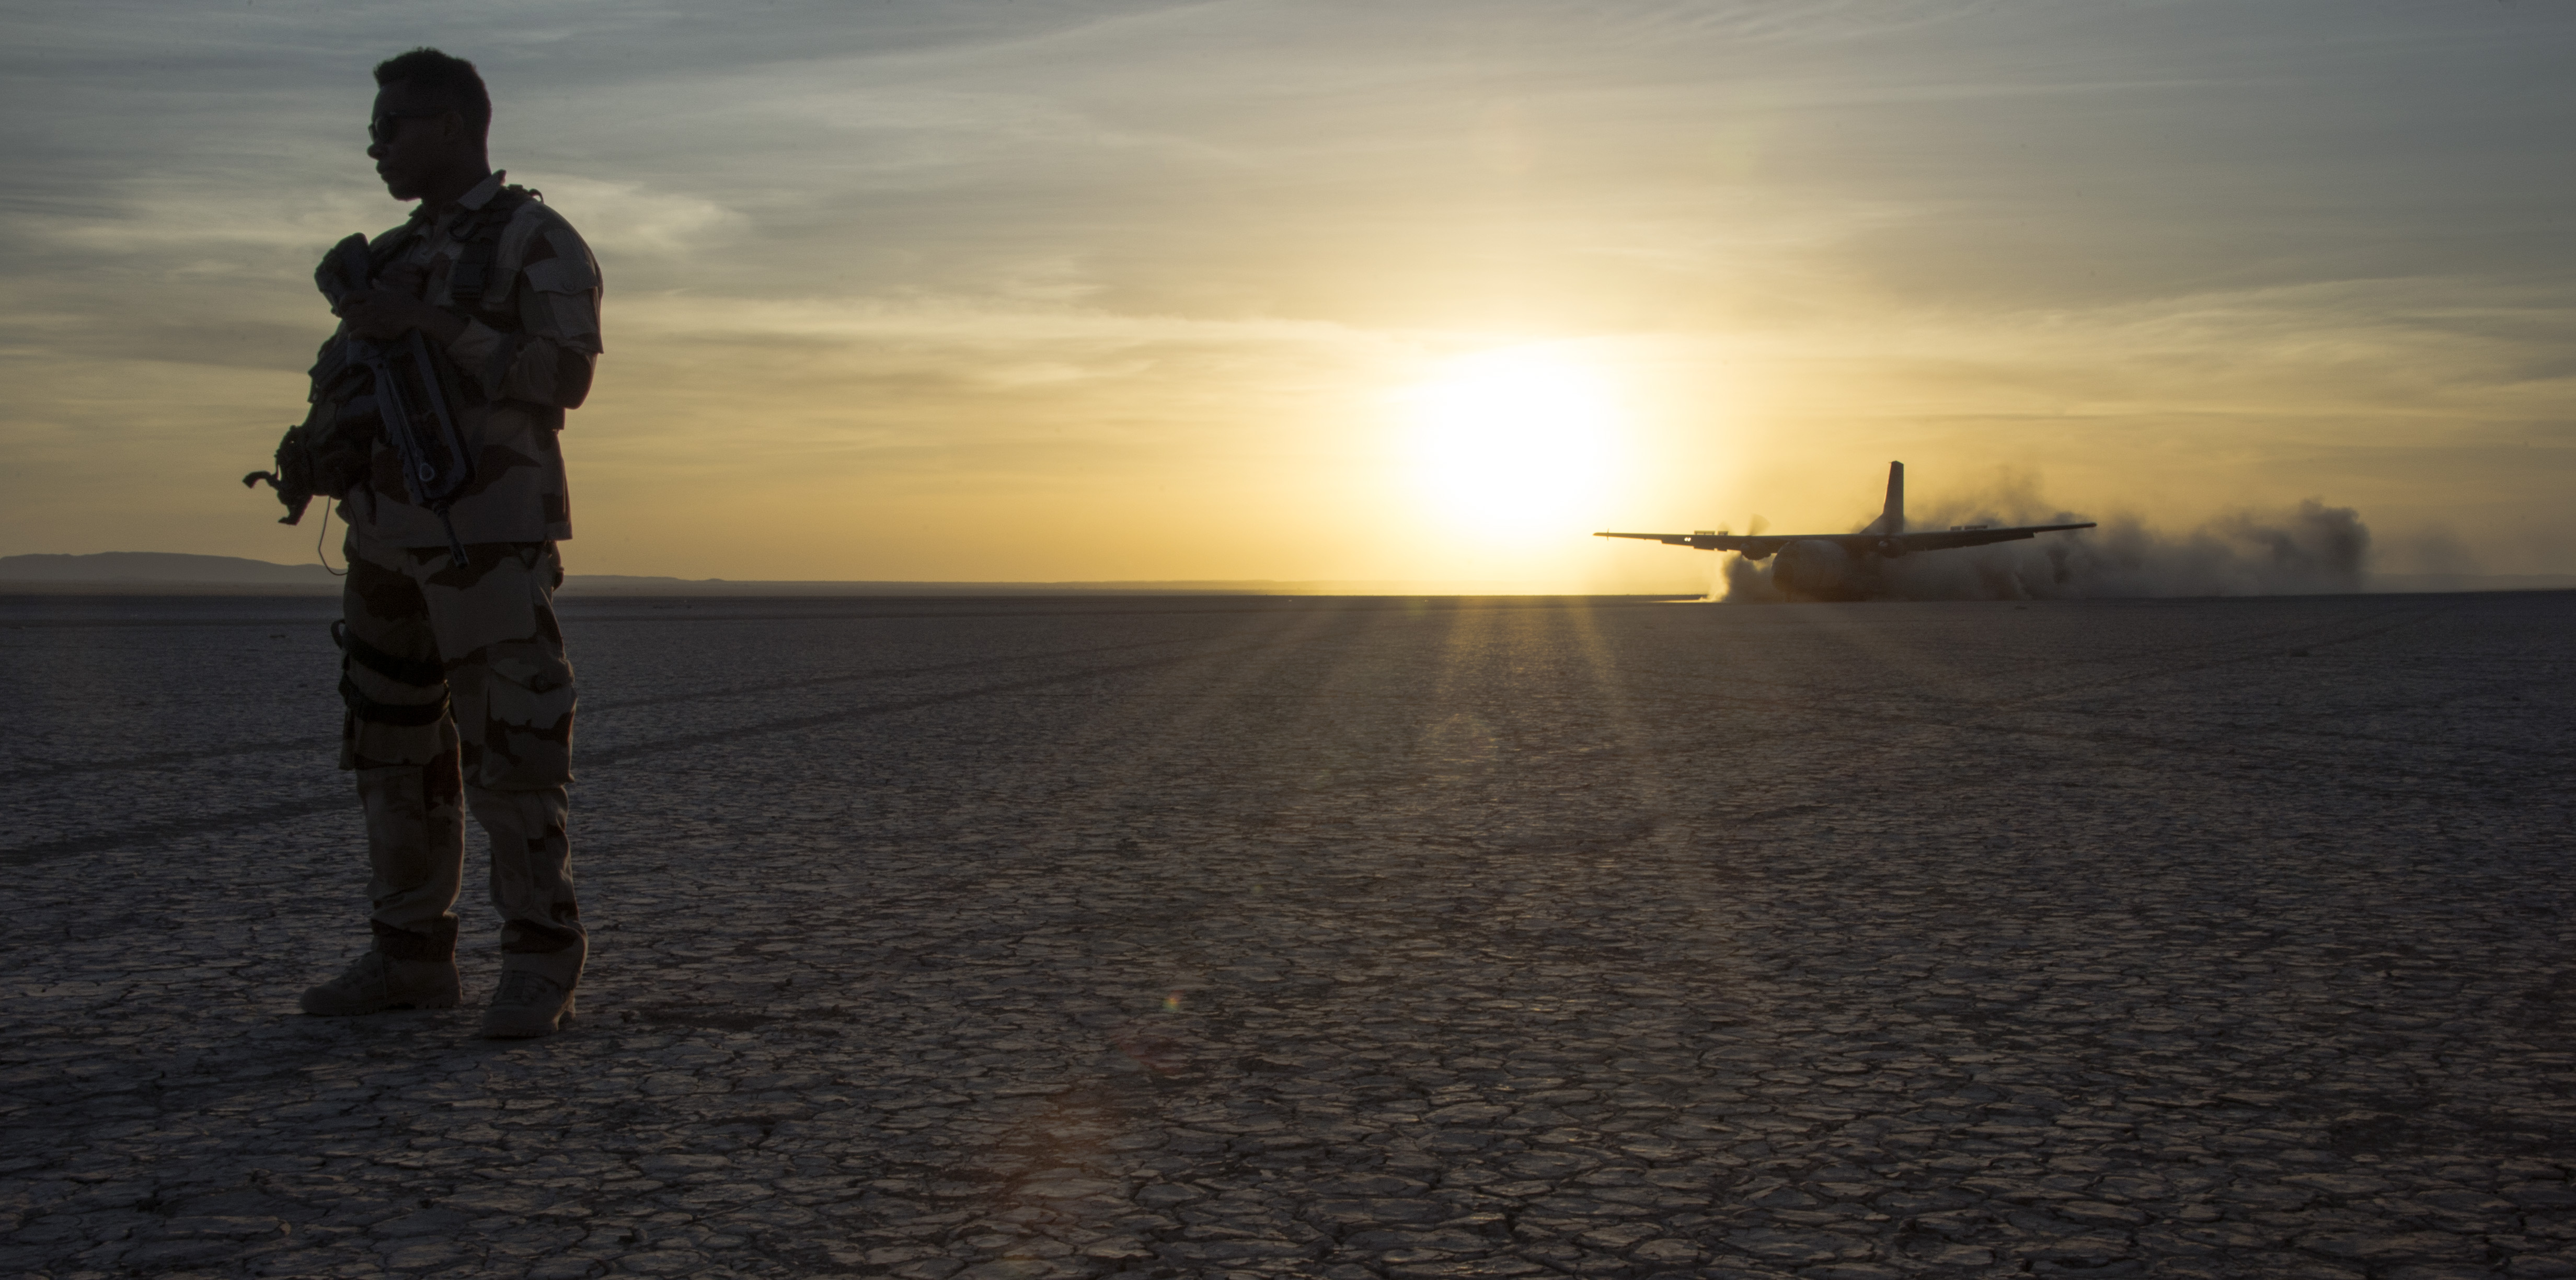 A French military member keeps onlookers at a safe distance from the landing area as a French C-160 Transall transport aircraft touches down on the rough terrain during the French live fire demonstration near Grand Bara, Djibouti, Jan. 14, 2017. The C-160 Transall is a tactical transport aircraft capable of carrying up to 93 troops with the ability to land on an airstrip as short as 400 meters. (U.S. Air National Guard photo by:  Staff Sgt. Christian Jadot)